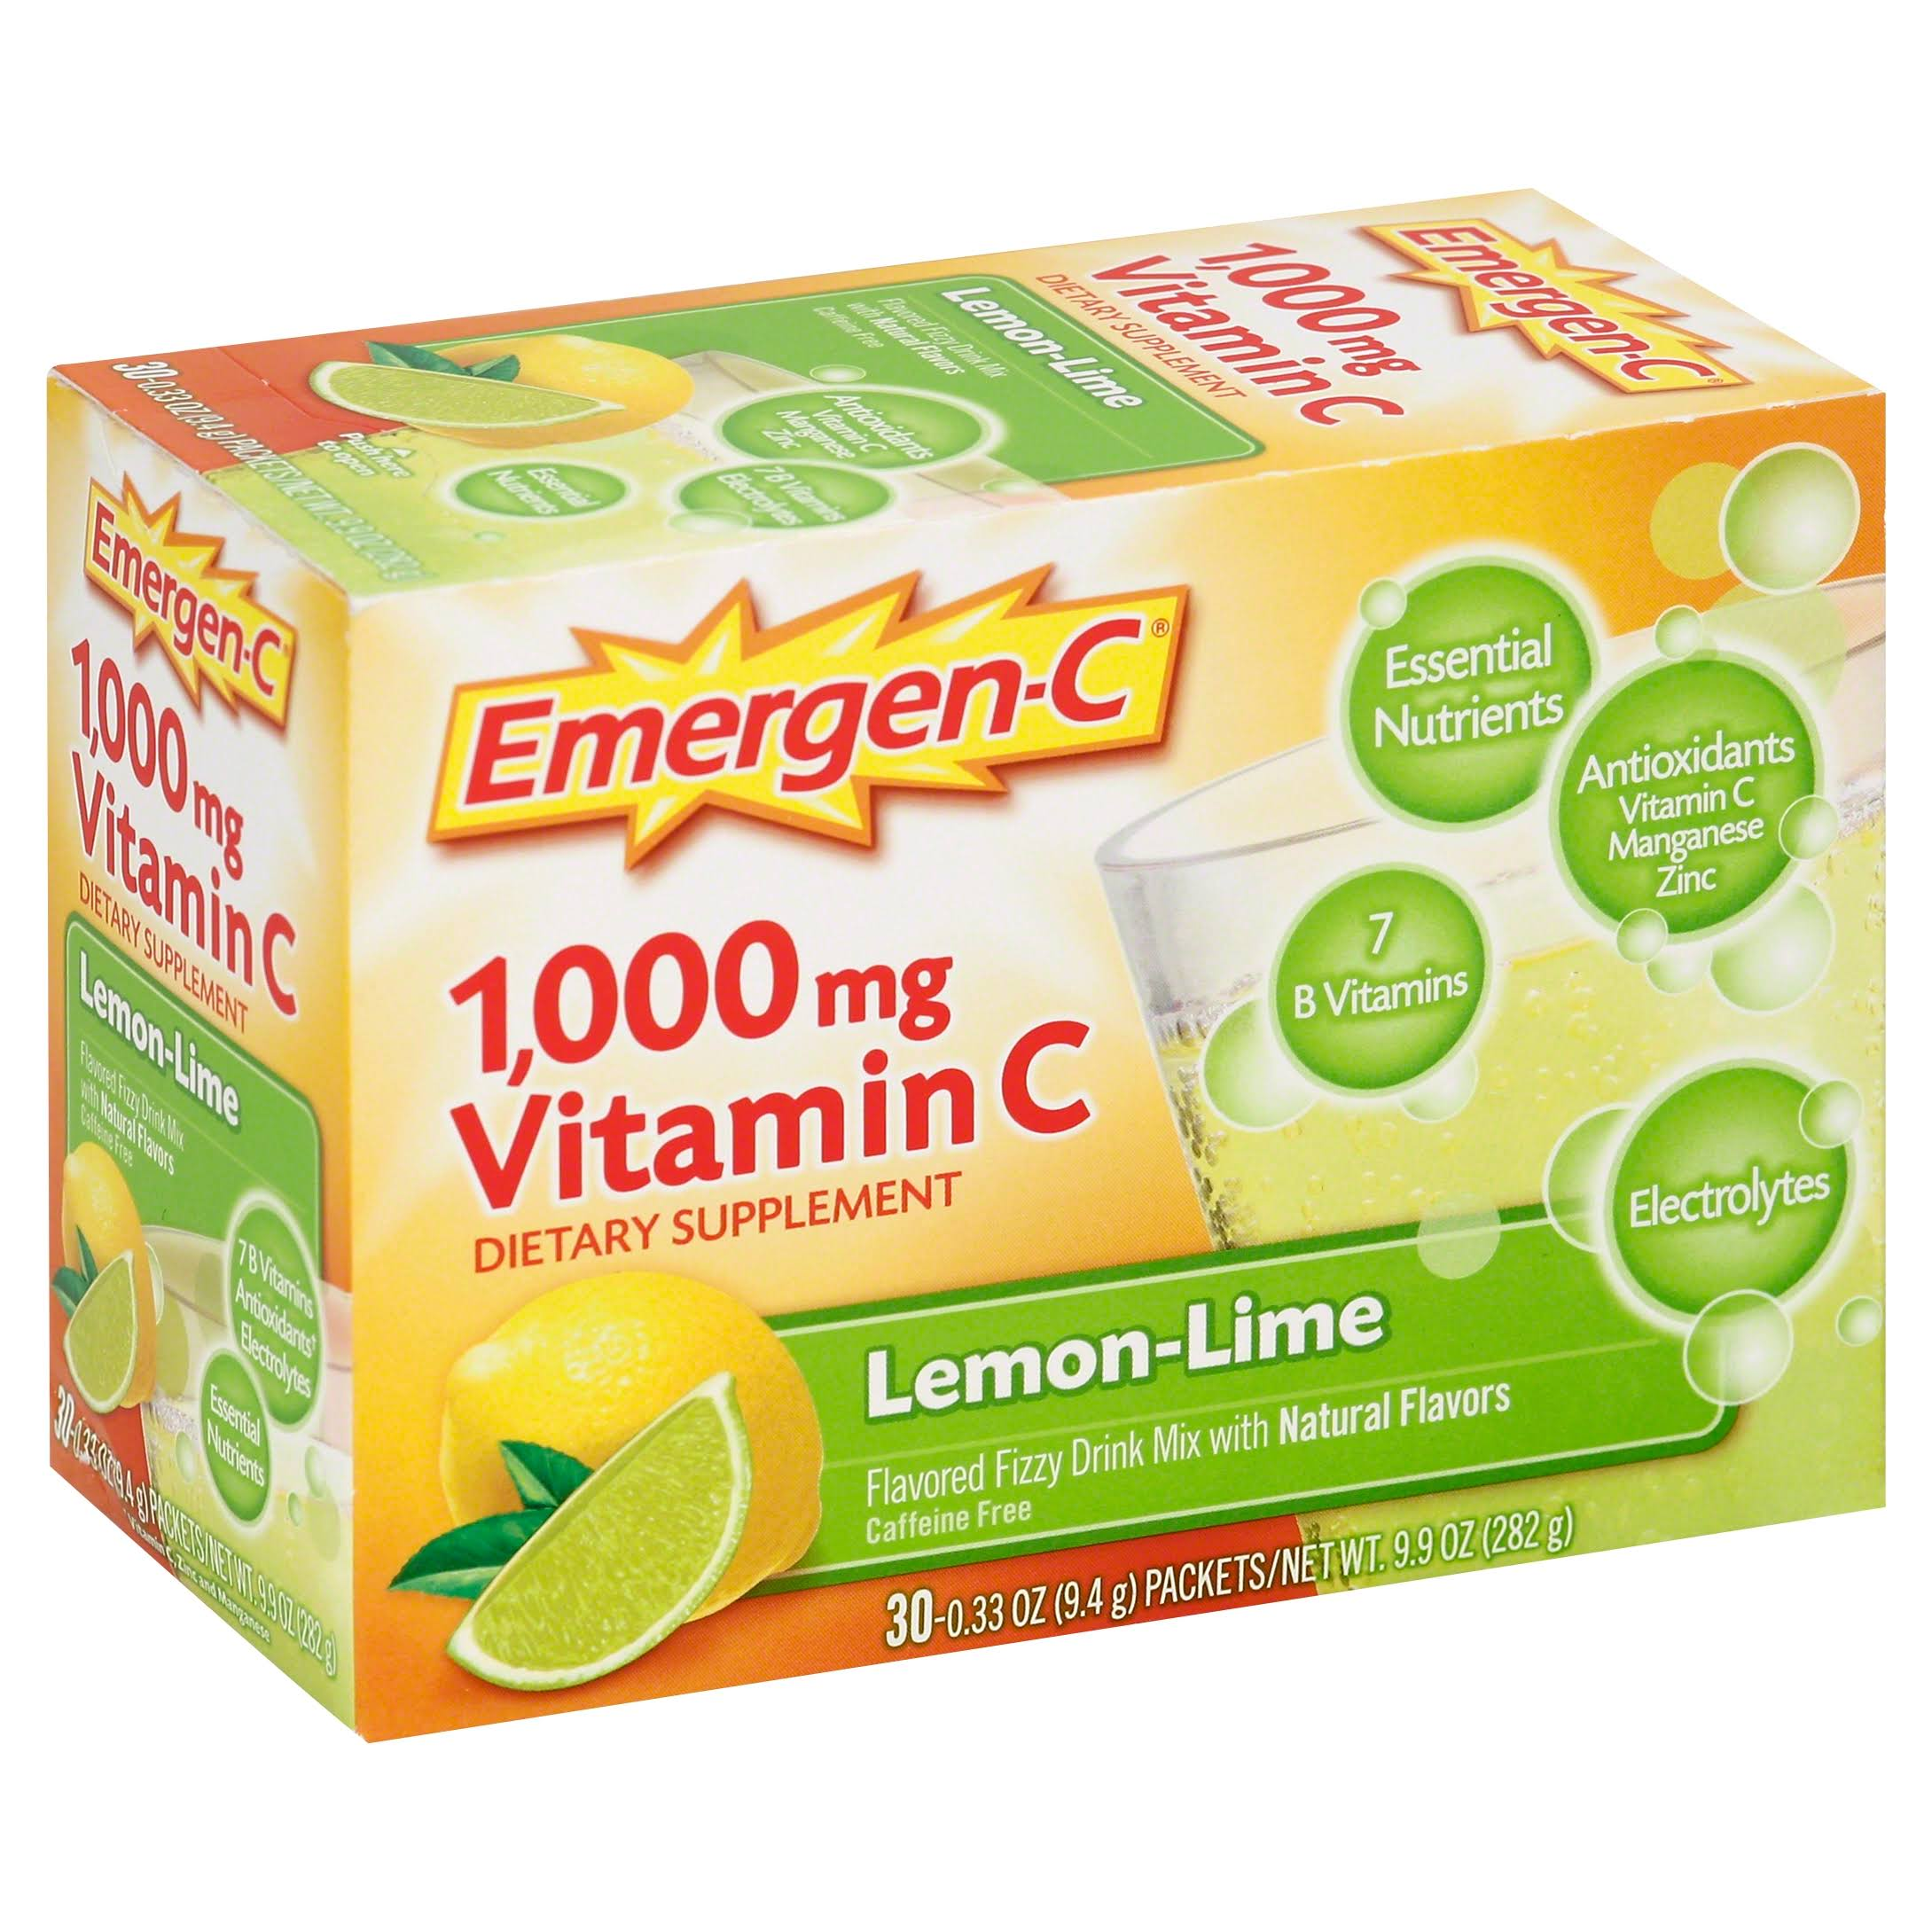 Emergen-C Vitamin C Flavored Fizzy Drink Mix - Lemon Lime, 10 Pack